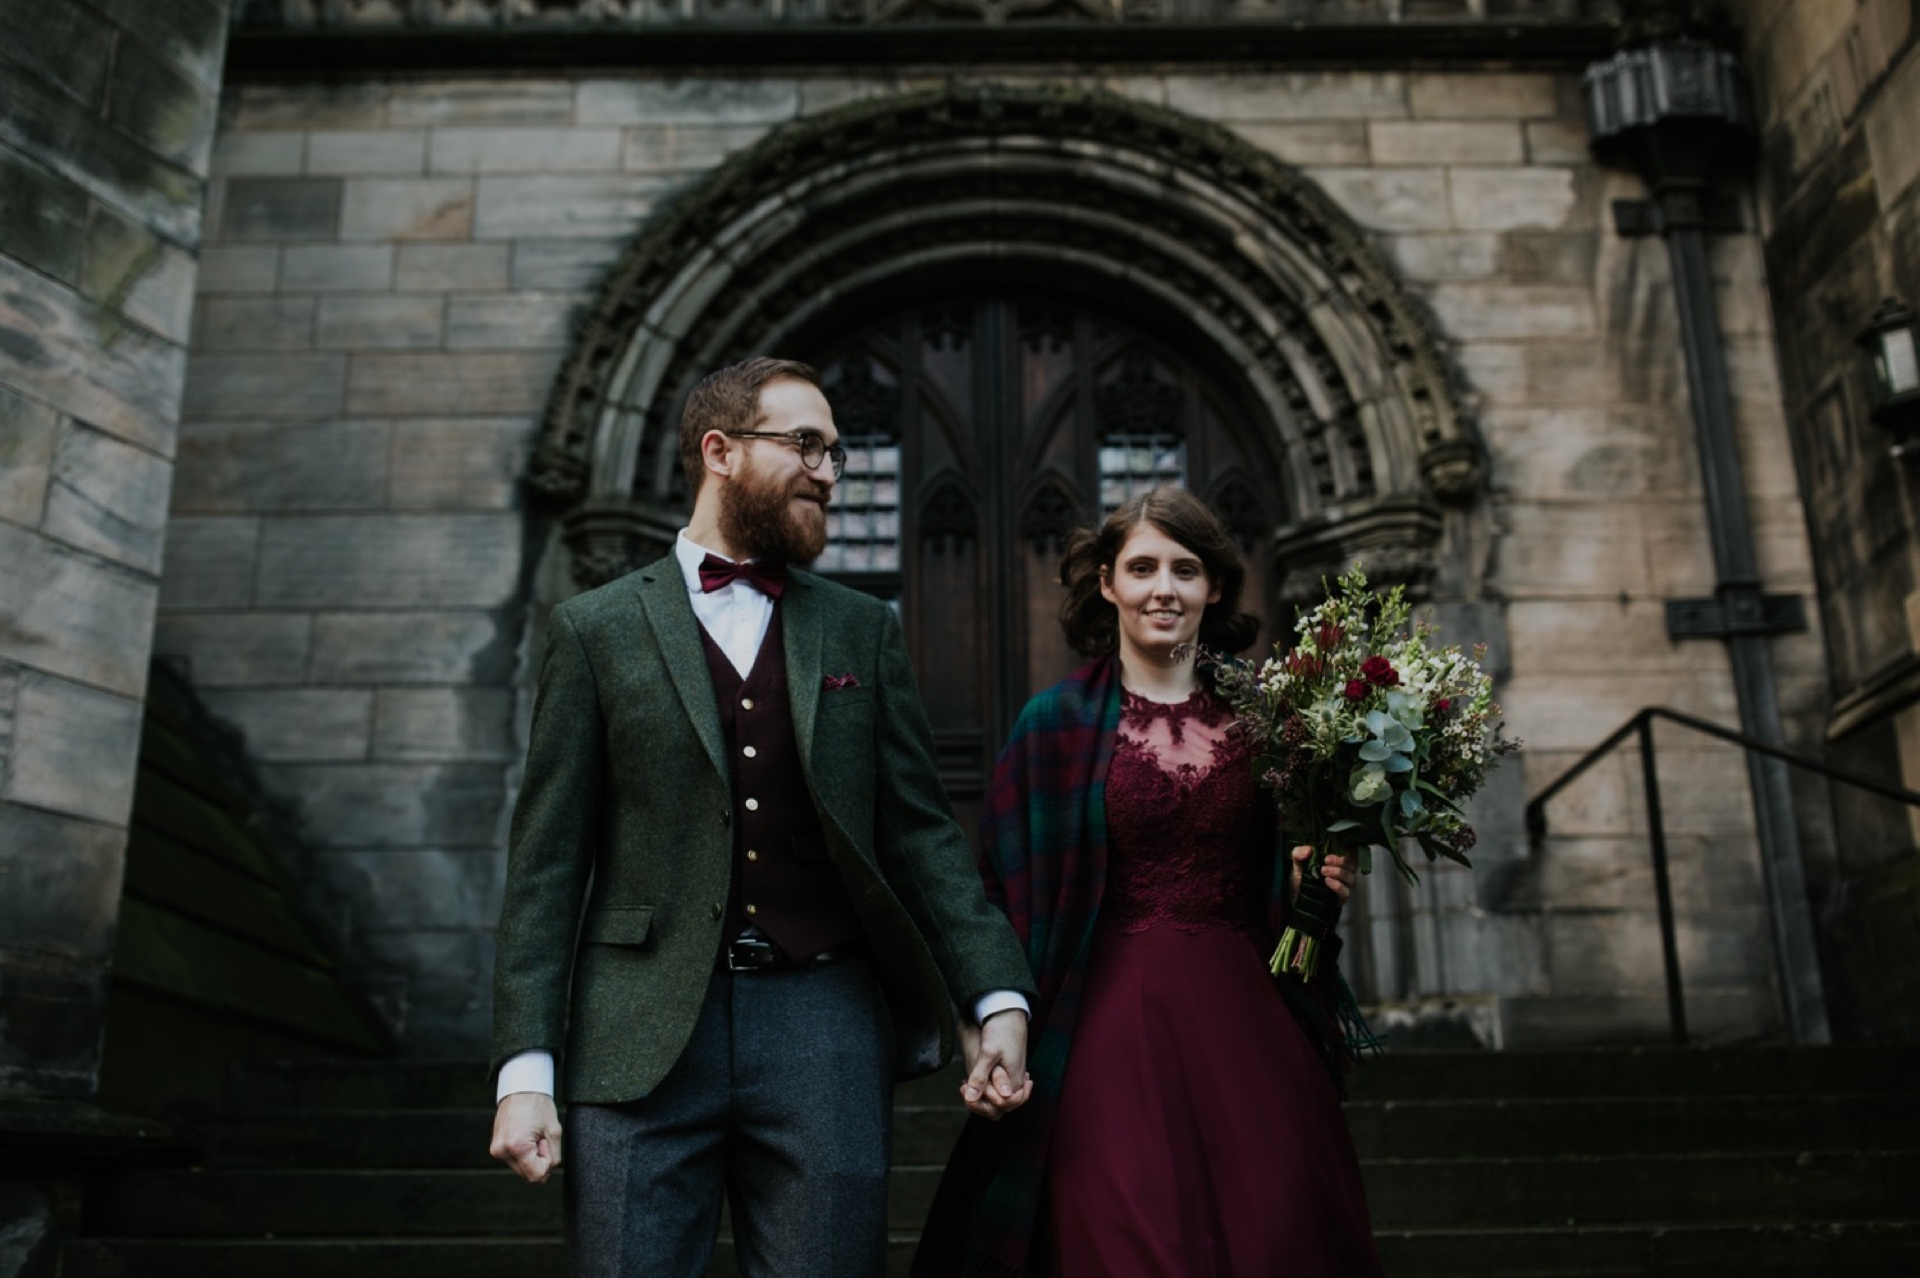 harry potter inspired edinburgh elopement